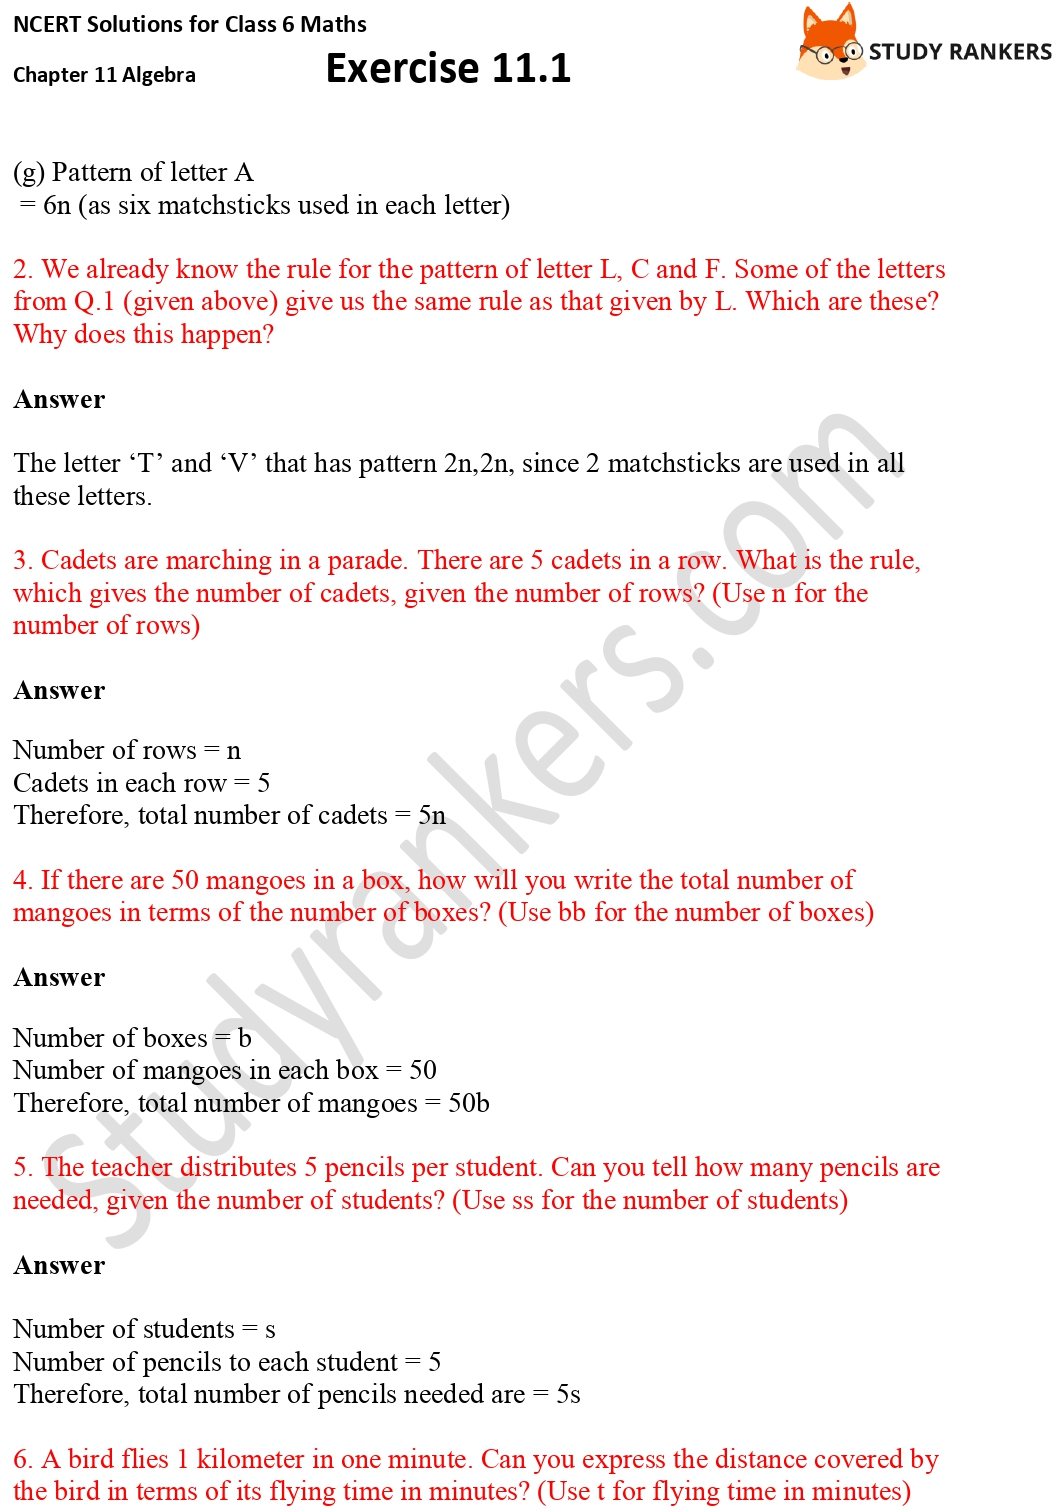 NCERT Solutions for Class 6 Maths Chapter 11 Algebra Exercise 11.1 Part 2